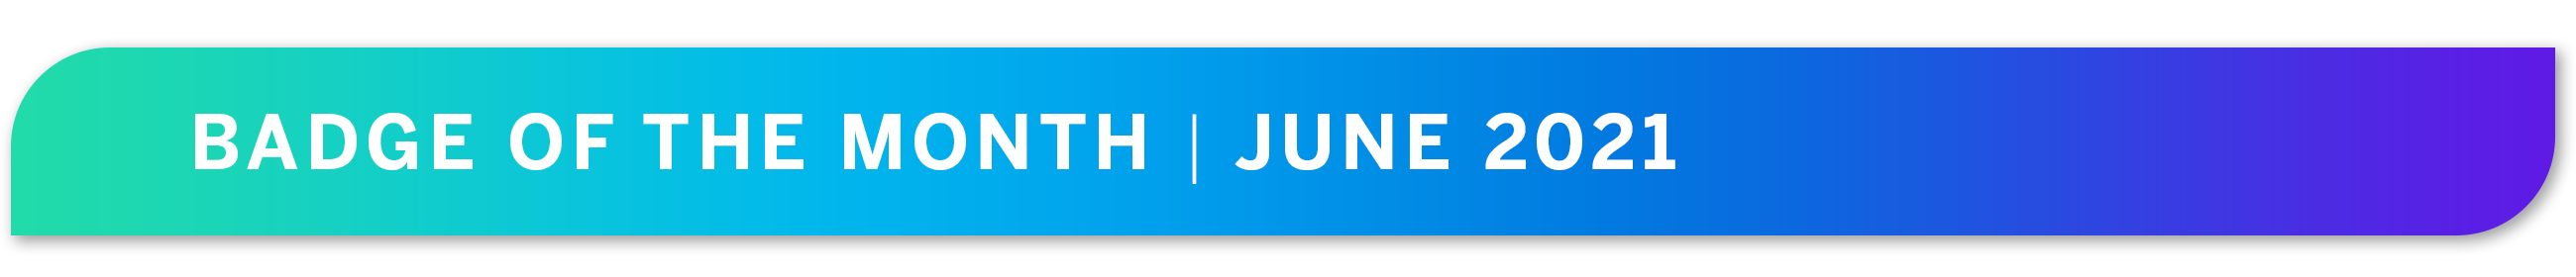 June 2021 _ Badge of the Month Banner (1).png